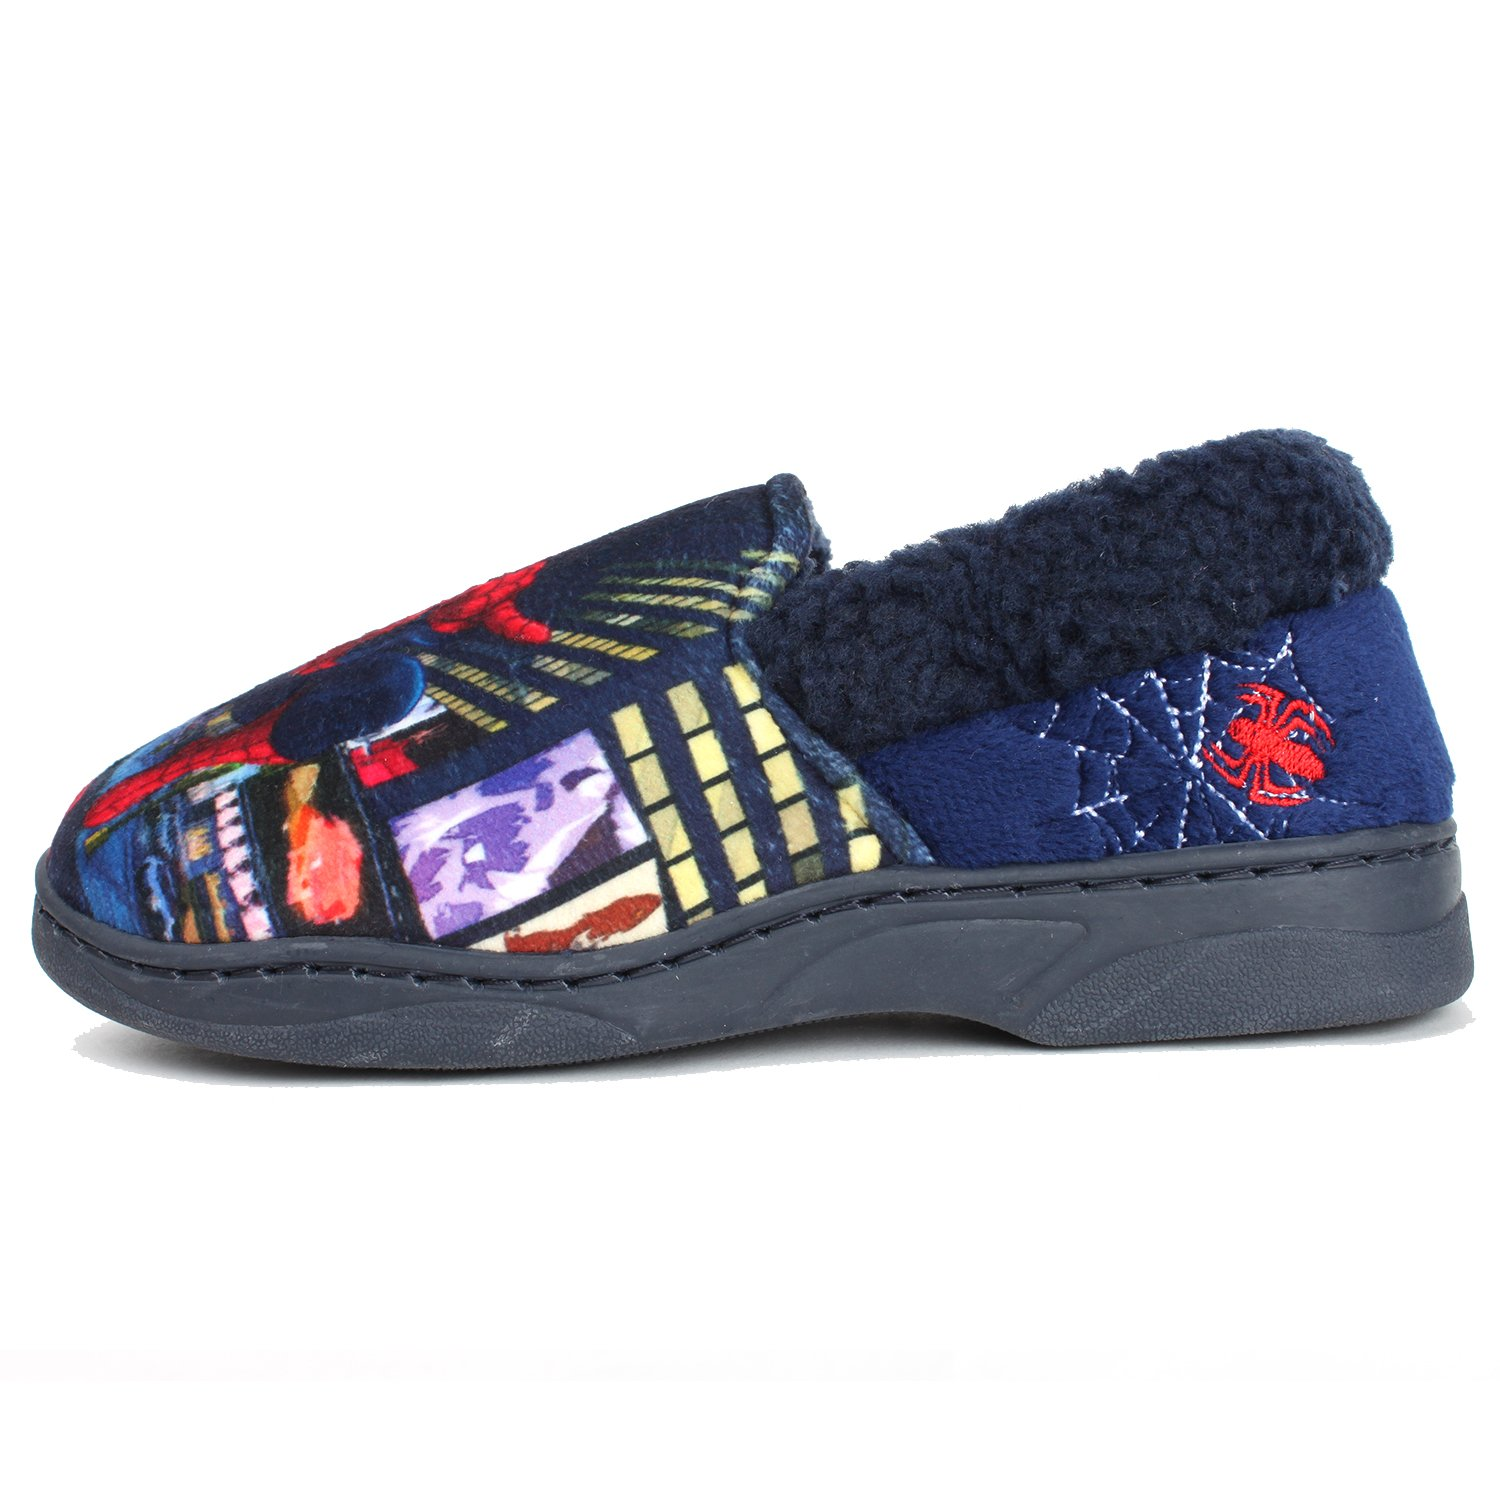 Joah Store Spider-Man Slippers for Boys Navy Red Warm Fur Clog Mule Indoor Shoes (3.5 M US Big Kid, Spider-Man) by Joah Store (Image #5)